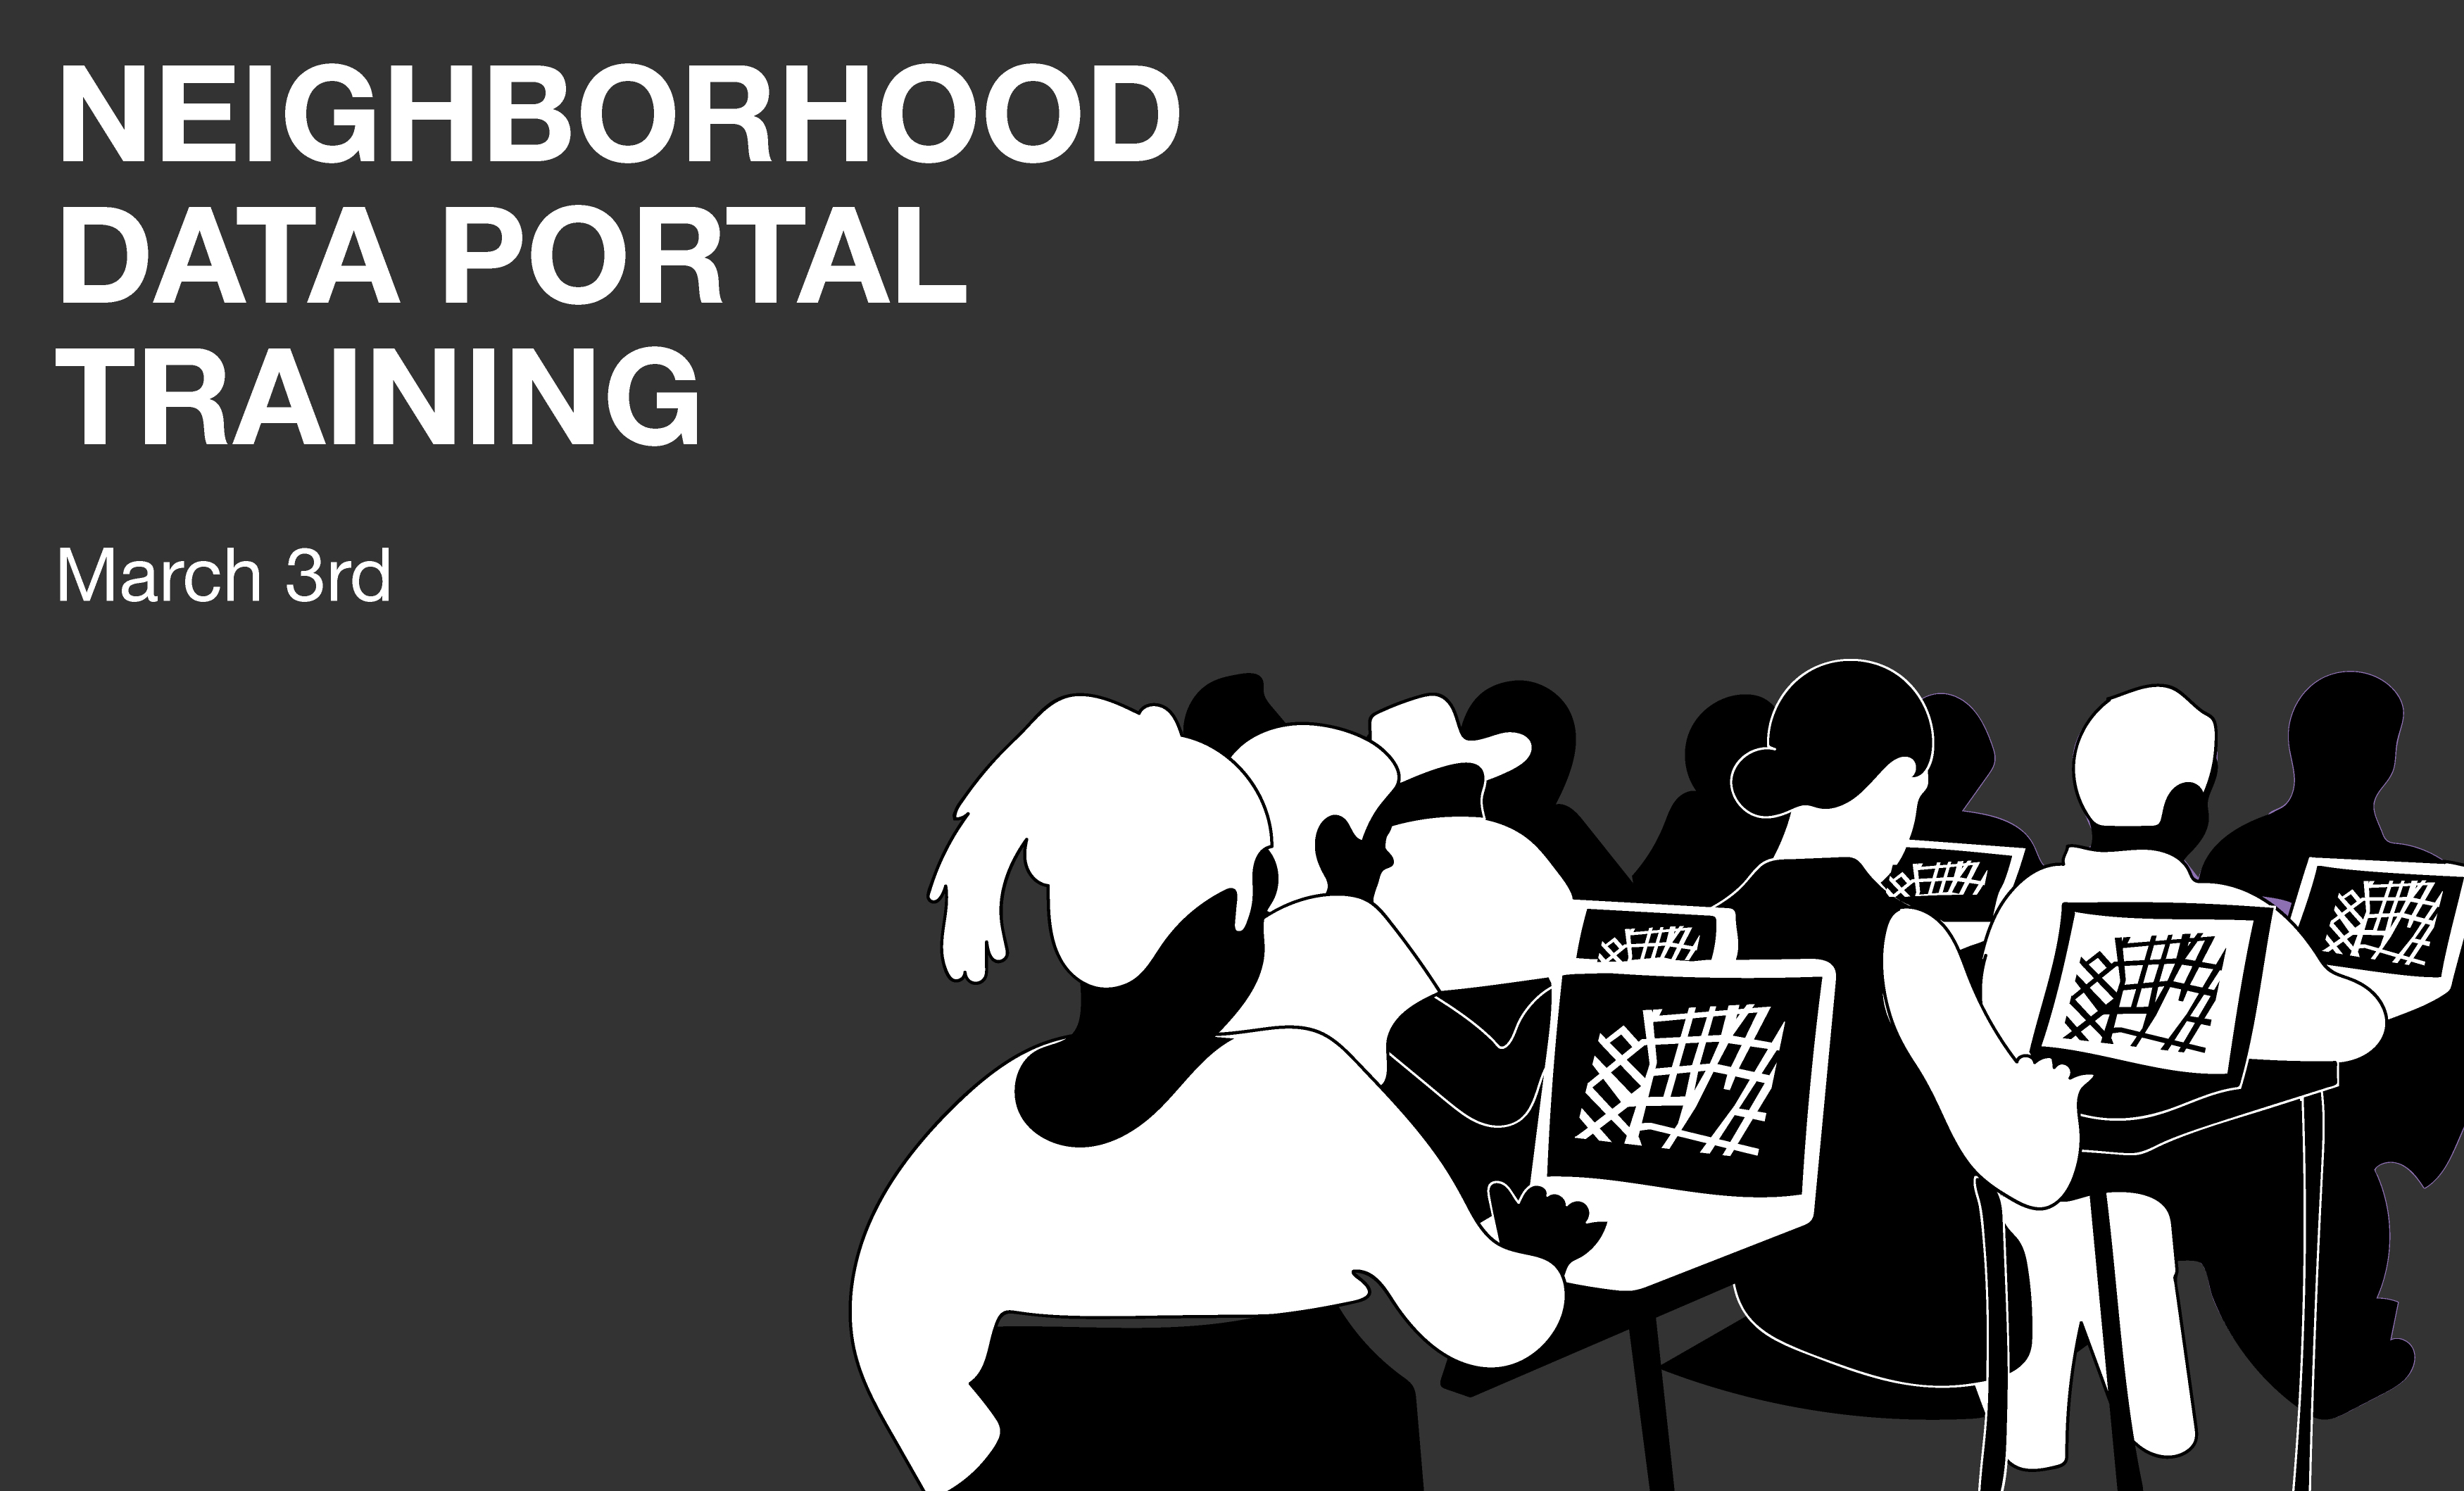 Neighborhood Data Portal Training